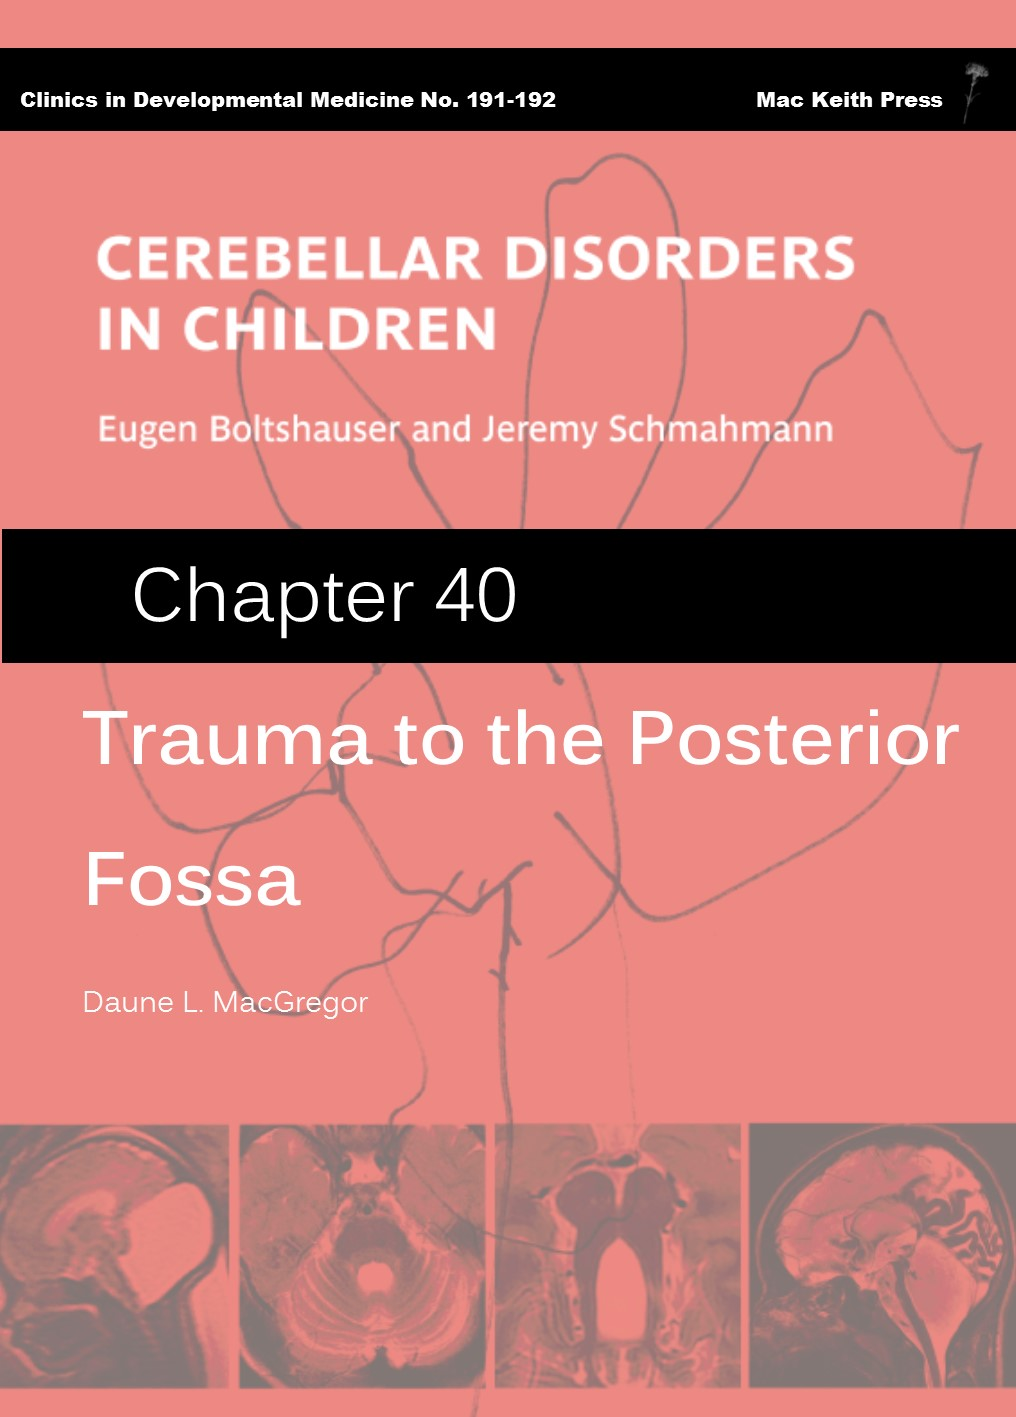 Trauma to the Posterior Fossa - Cerebellar Disorders in Children (Chapter 40) COVER